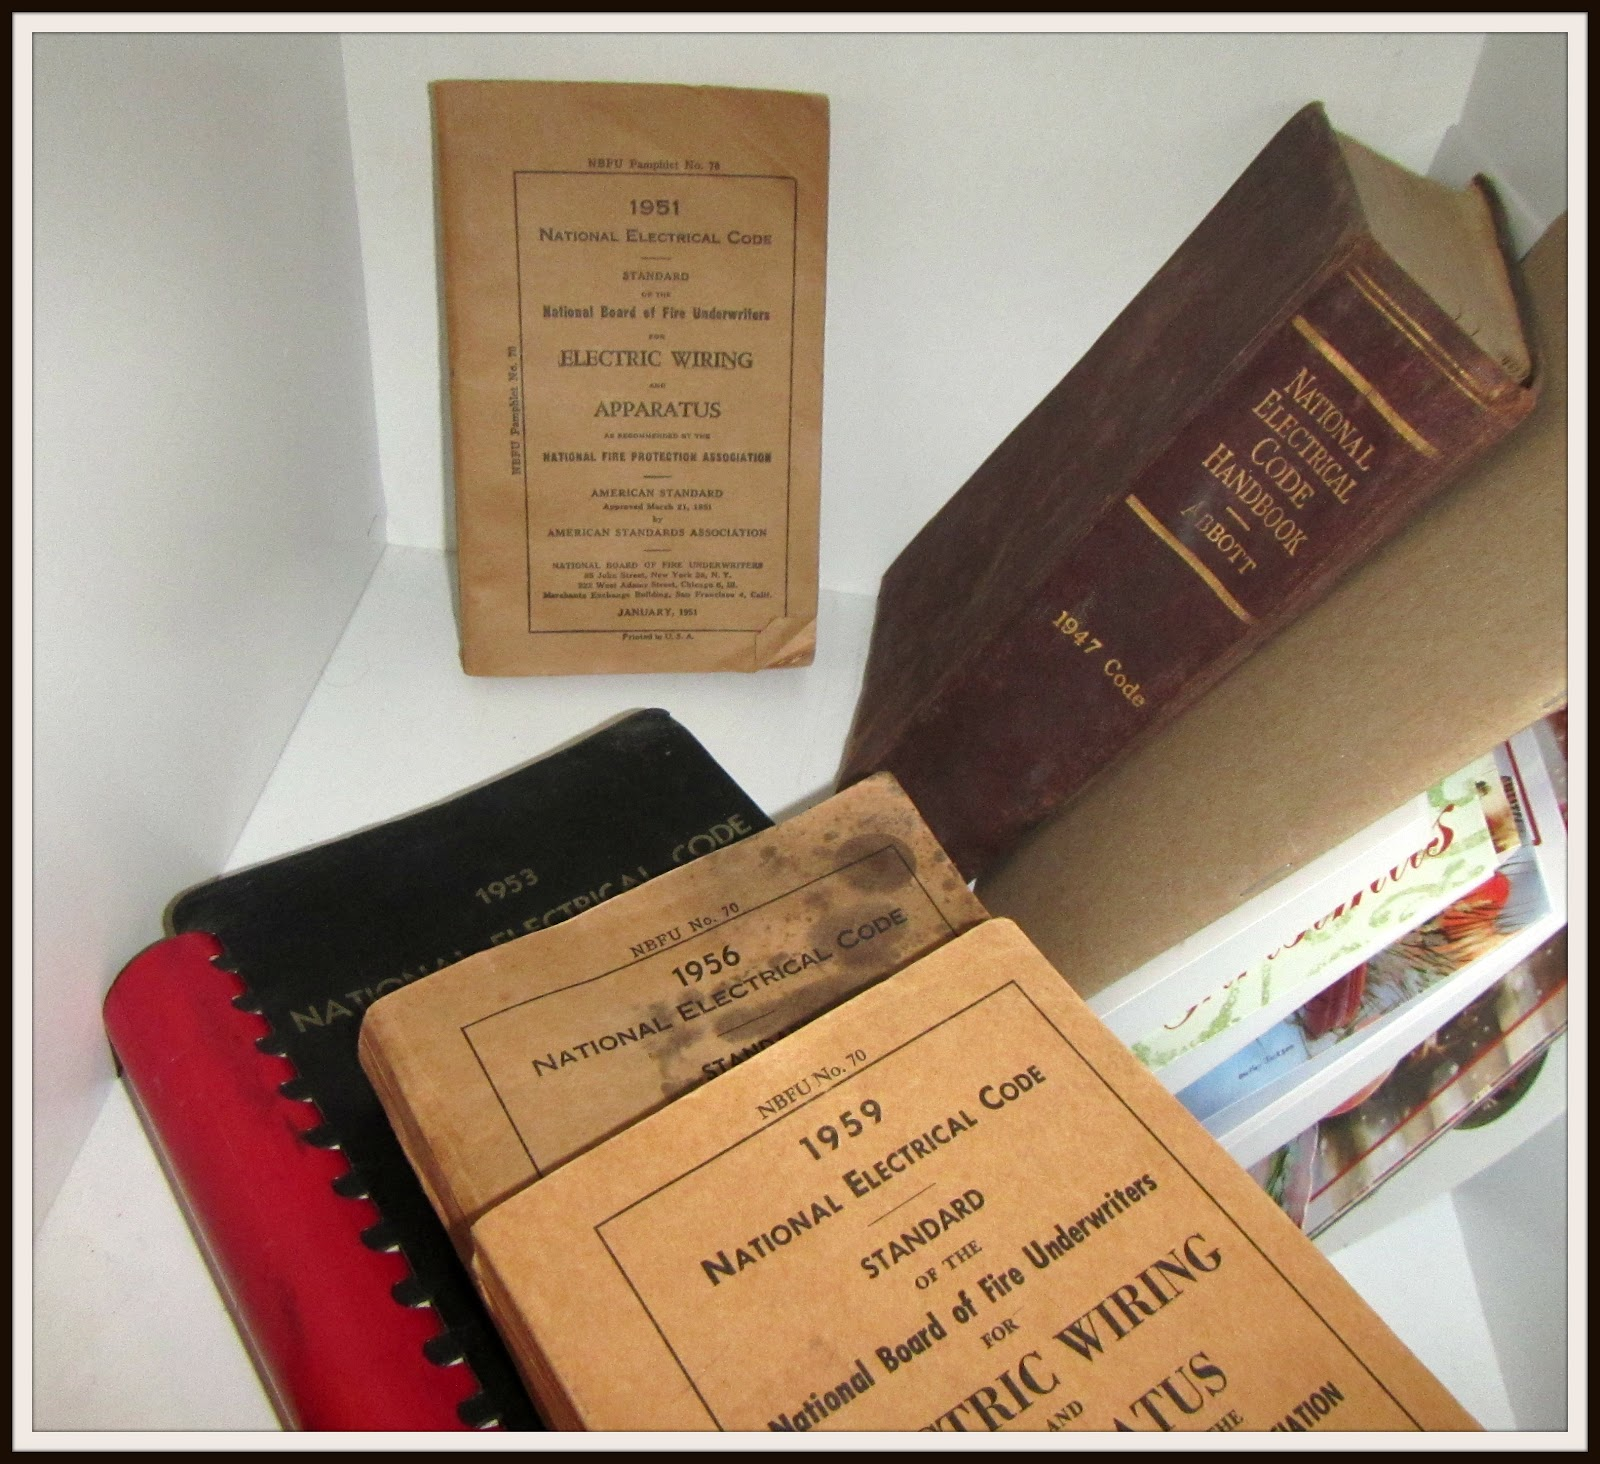 hight resolution of nec code books 1959 to 1947